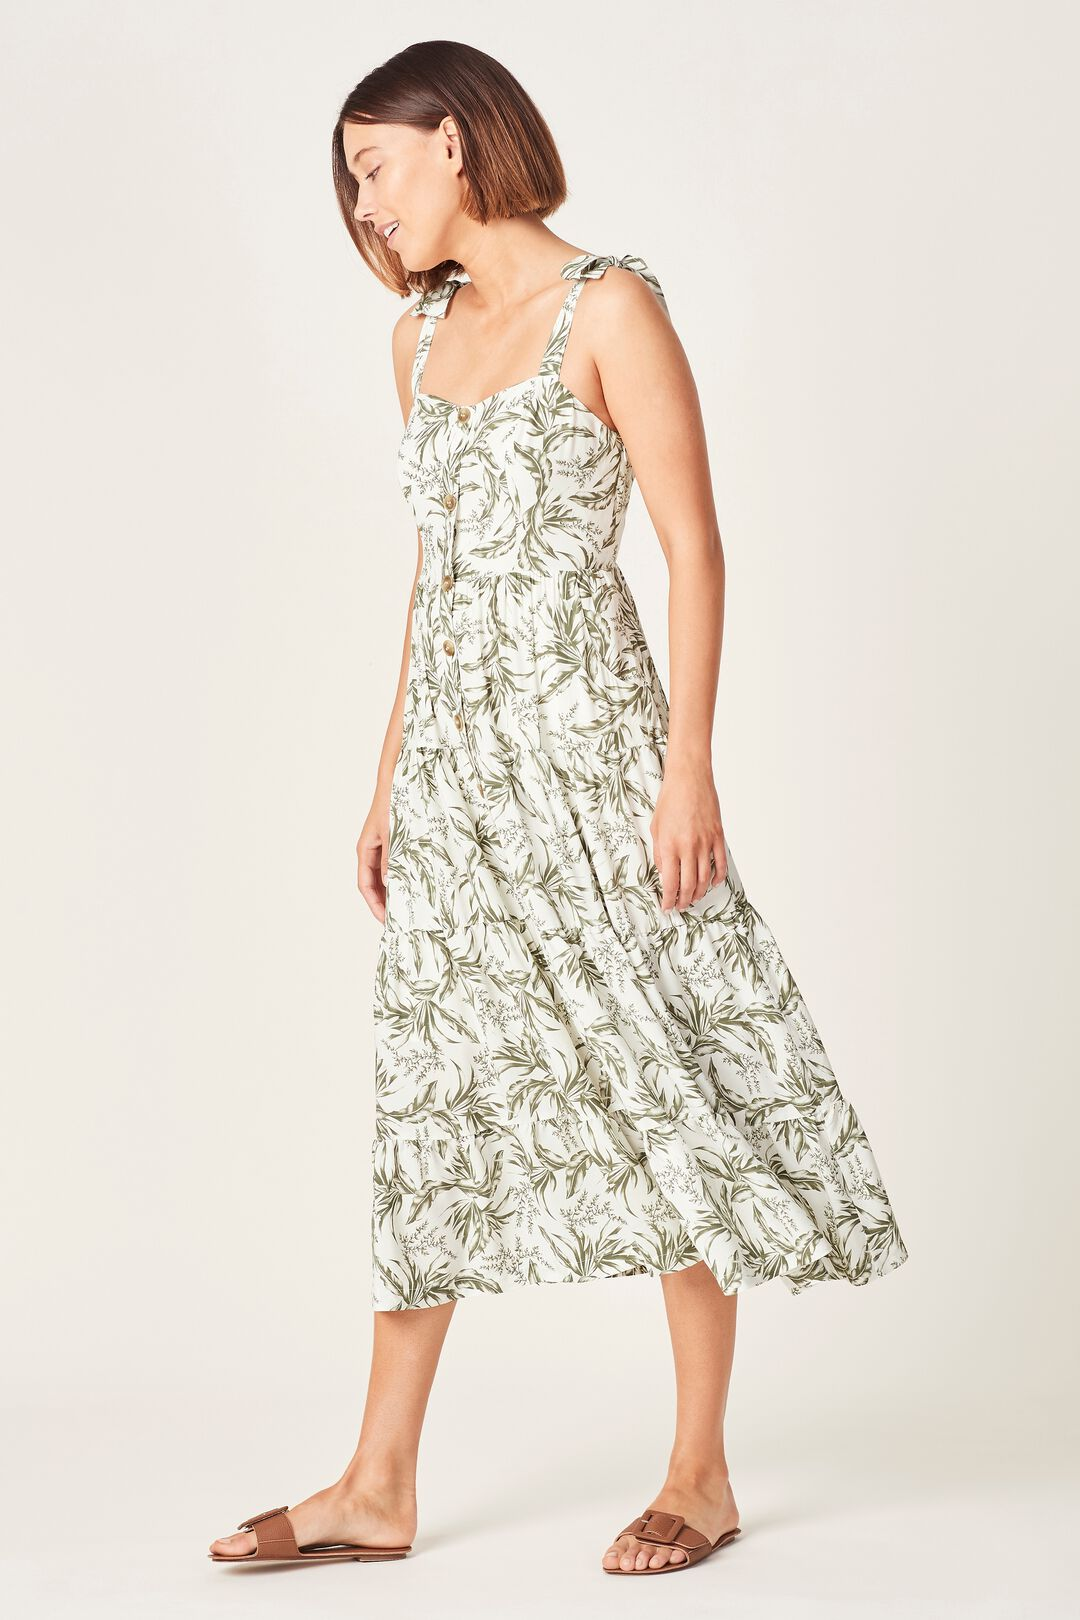 TONAL TROPICAL TIERED DRESS  SUMMER WHITE/WASHED  hi-res